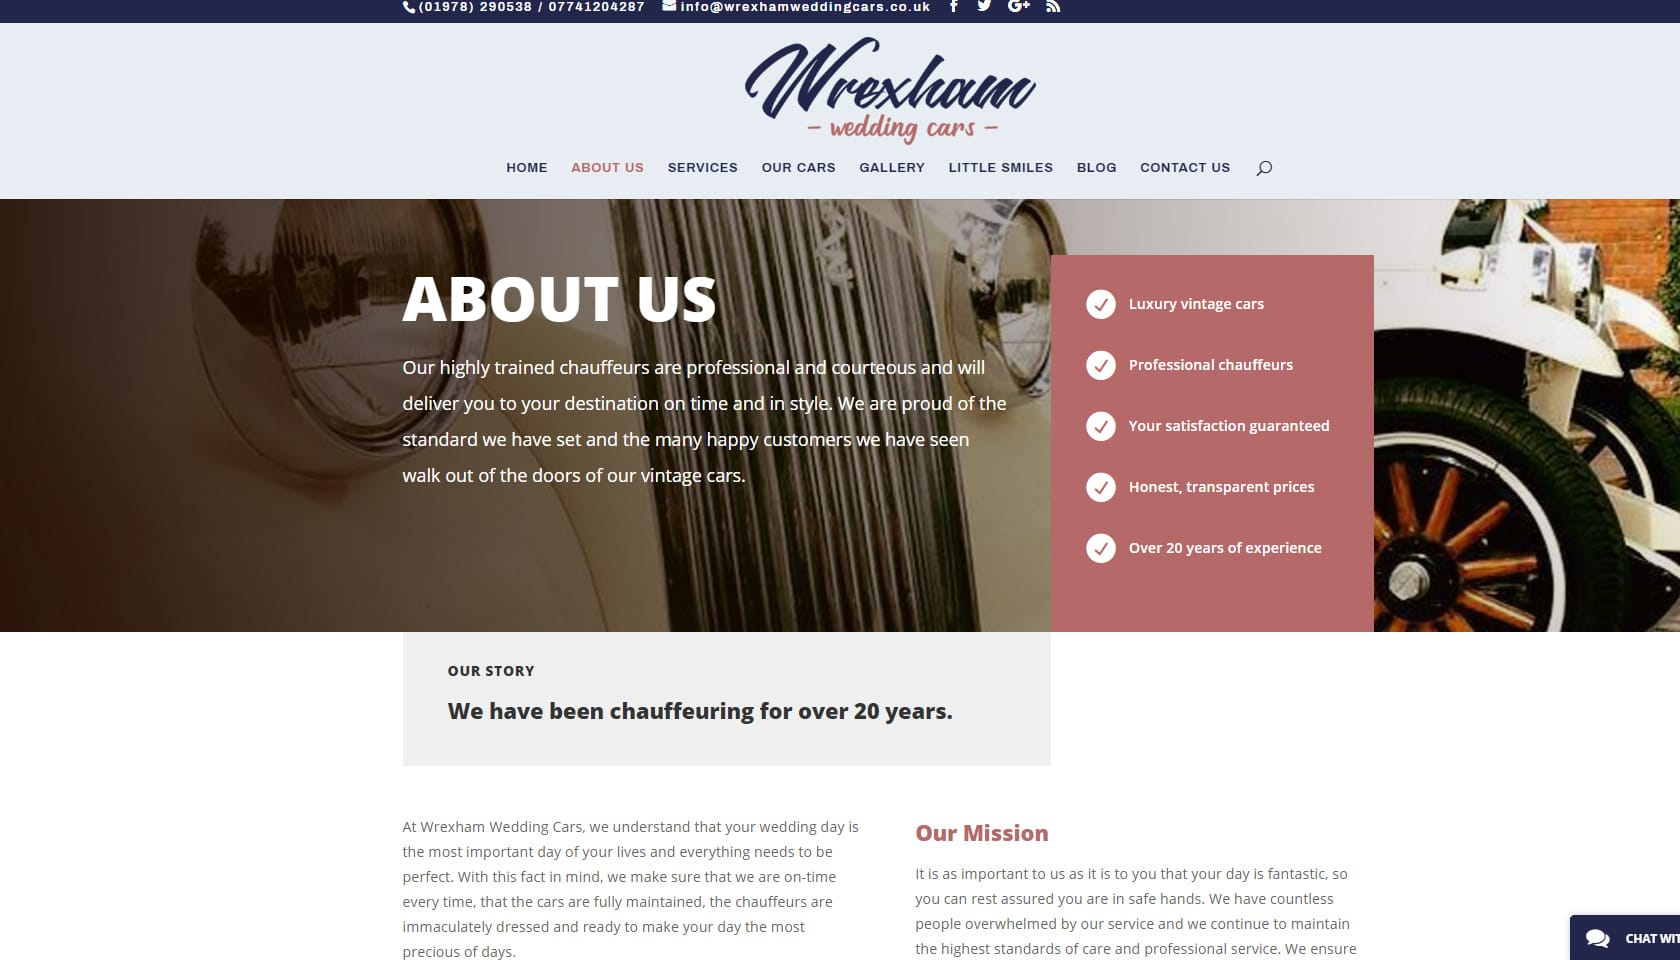 wrexham wedding cars about us page